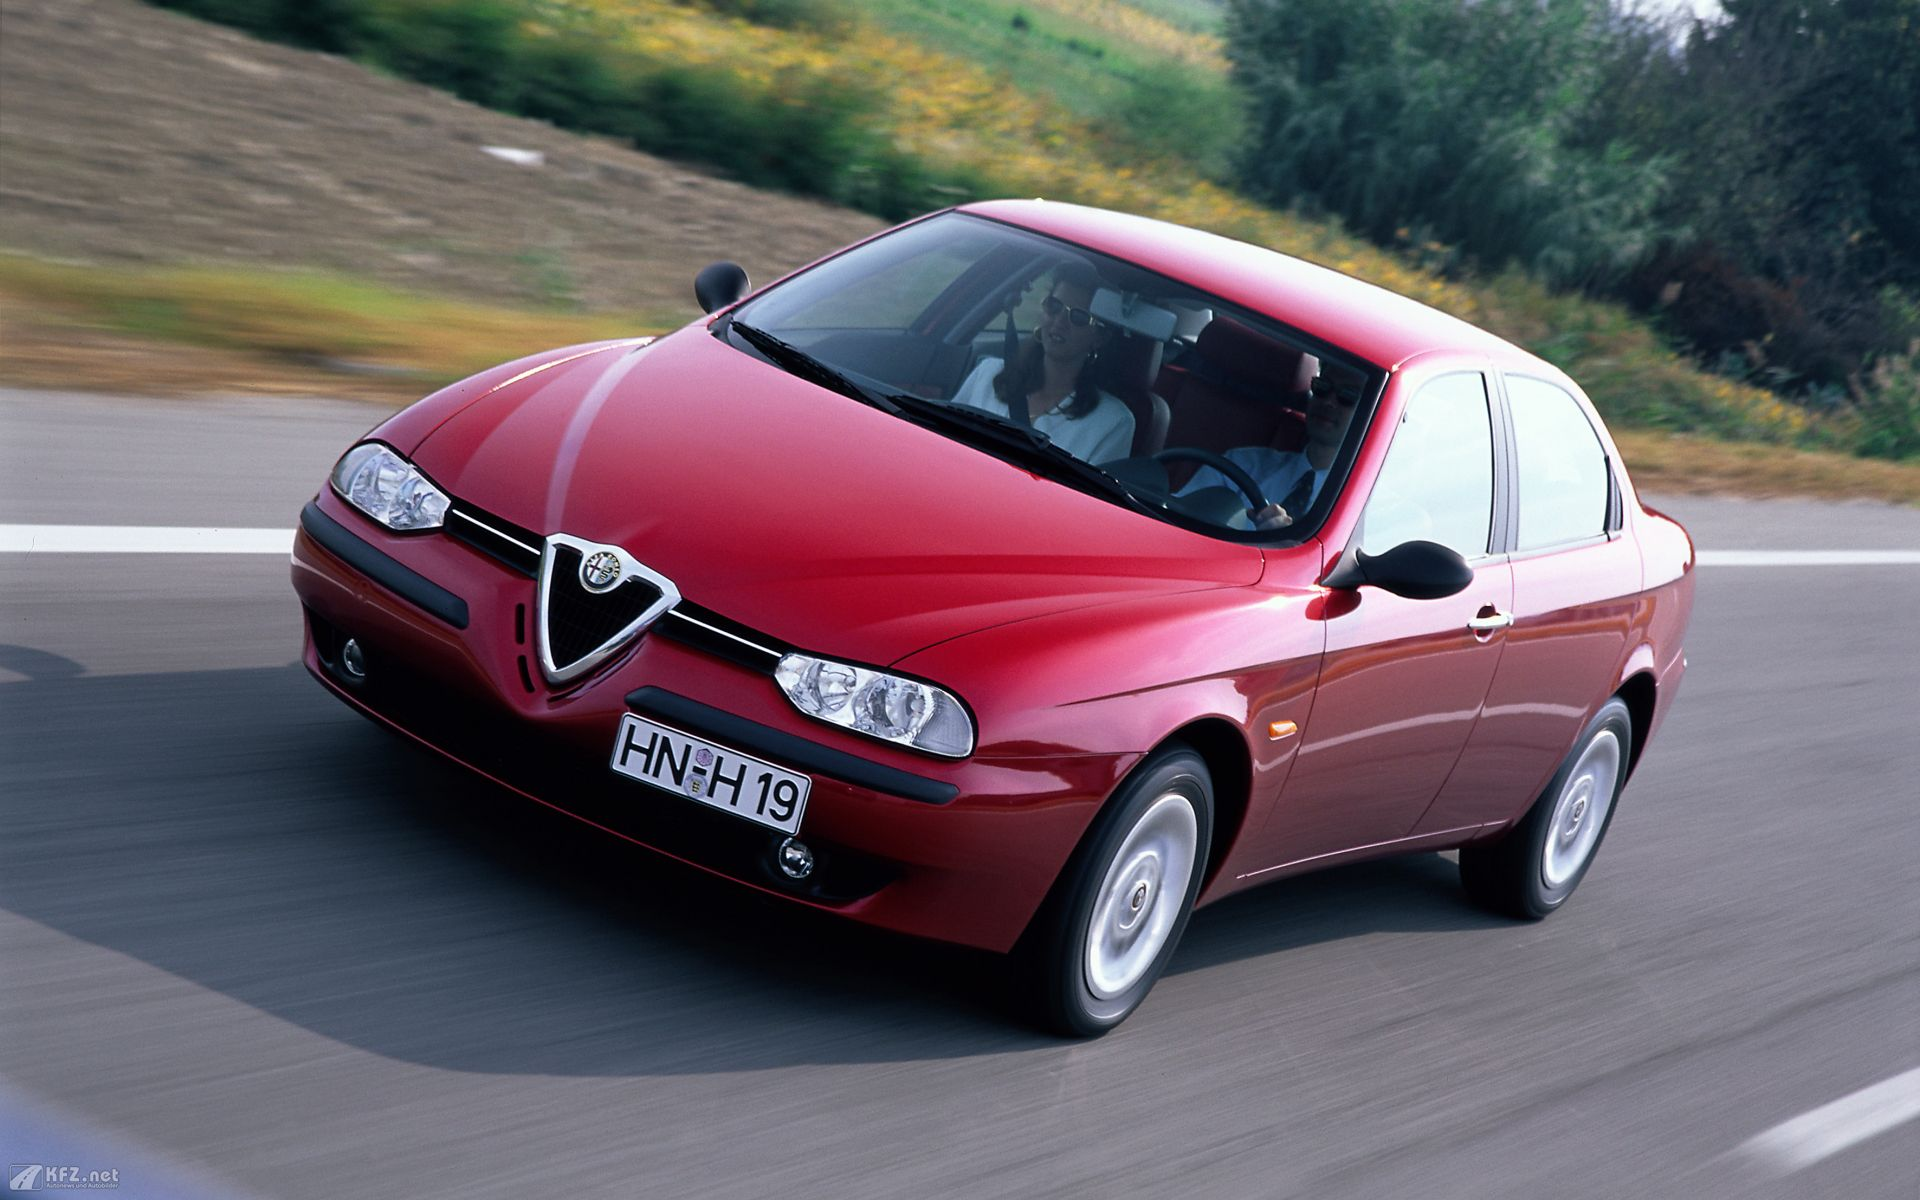 alfa romeo 156 review and photos. Black Bedroom Furniture Sets. Home Design Ideas